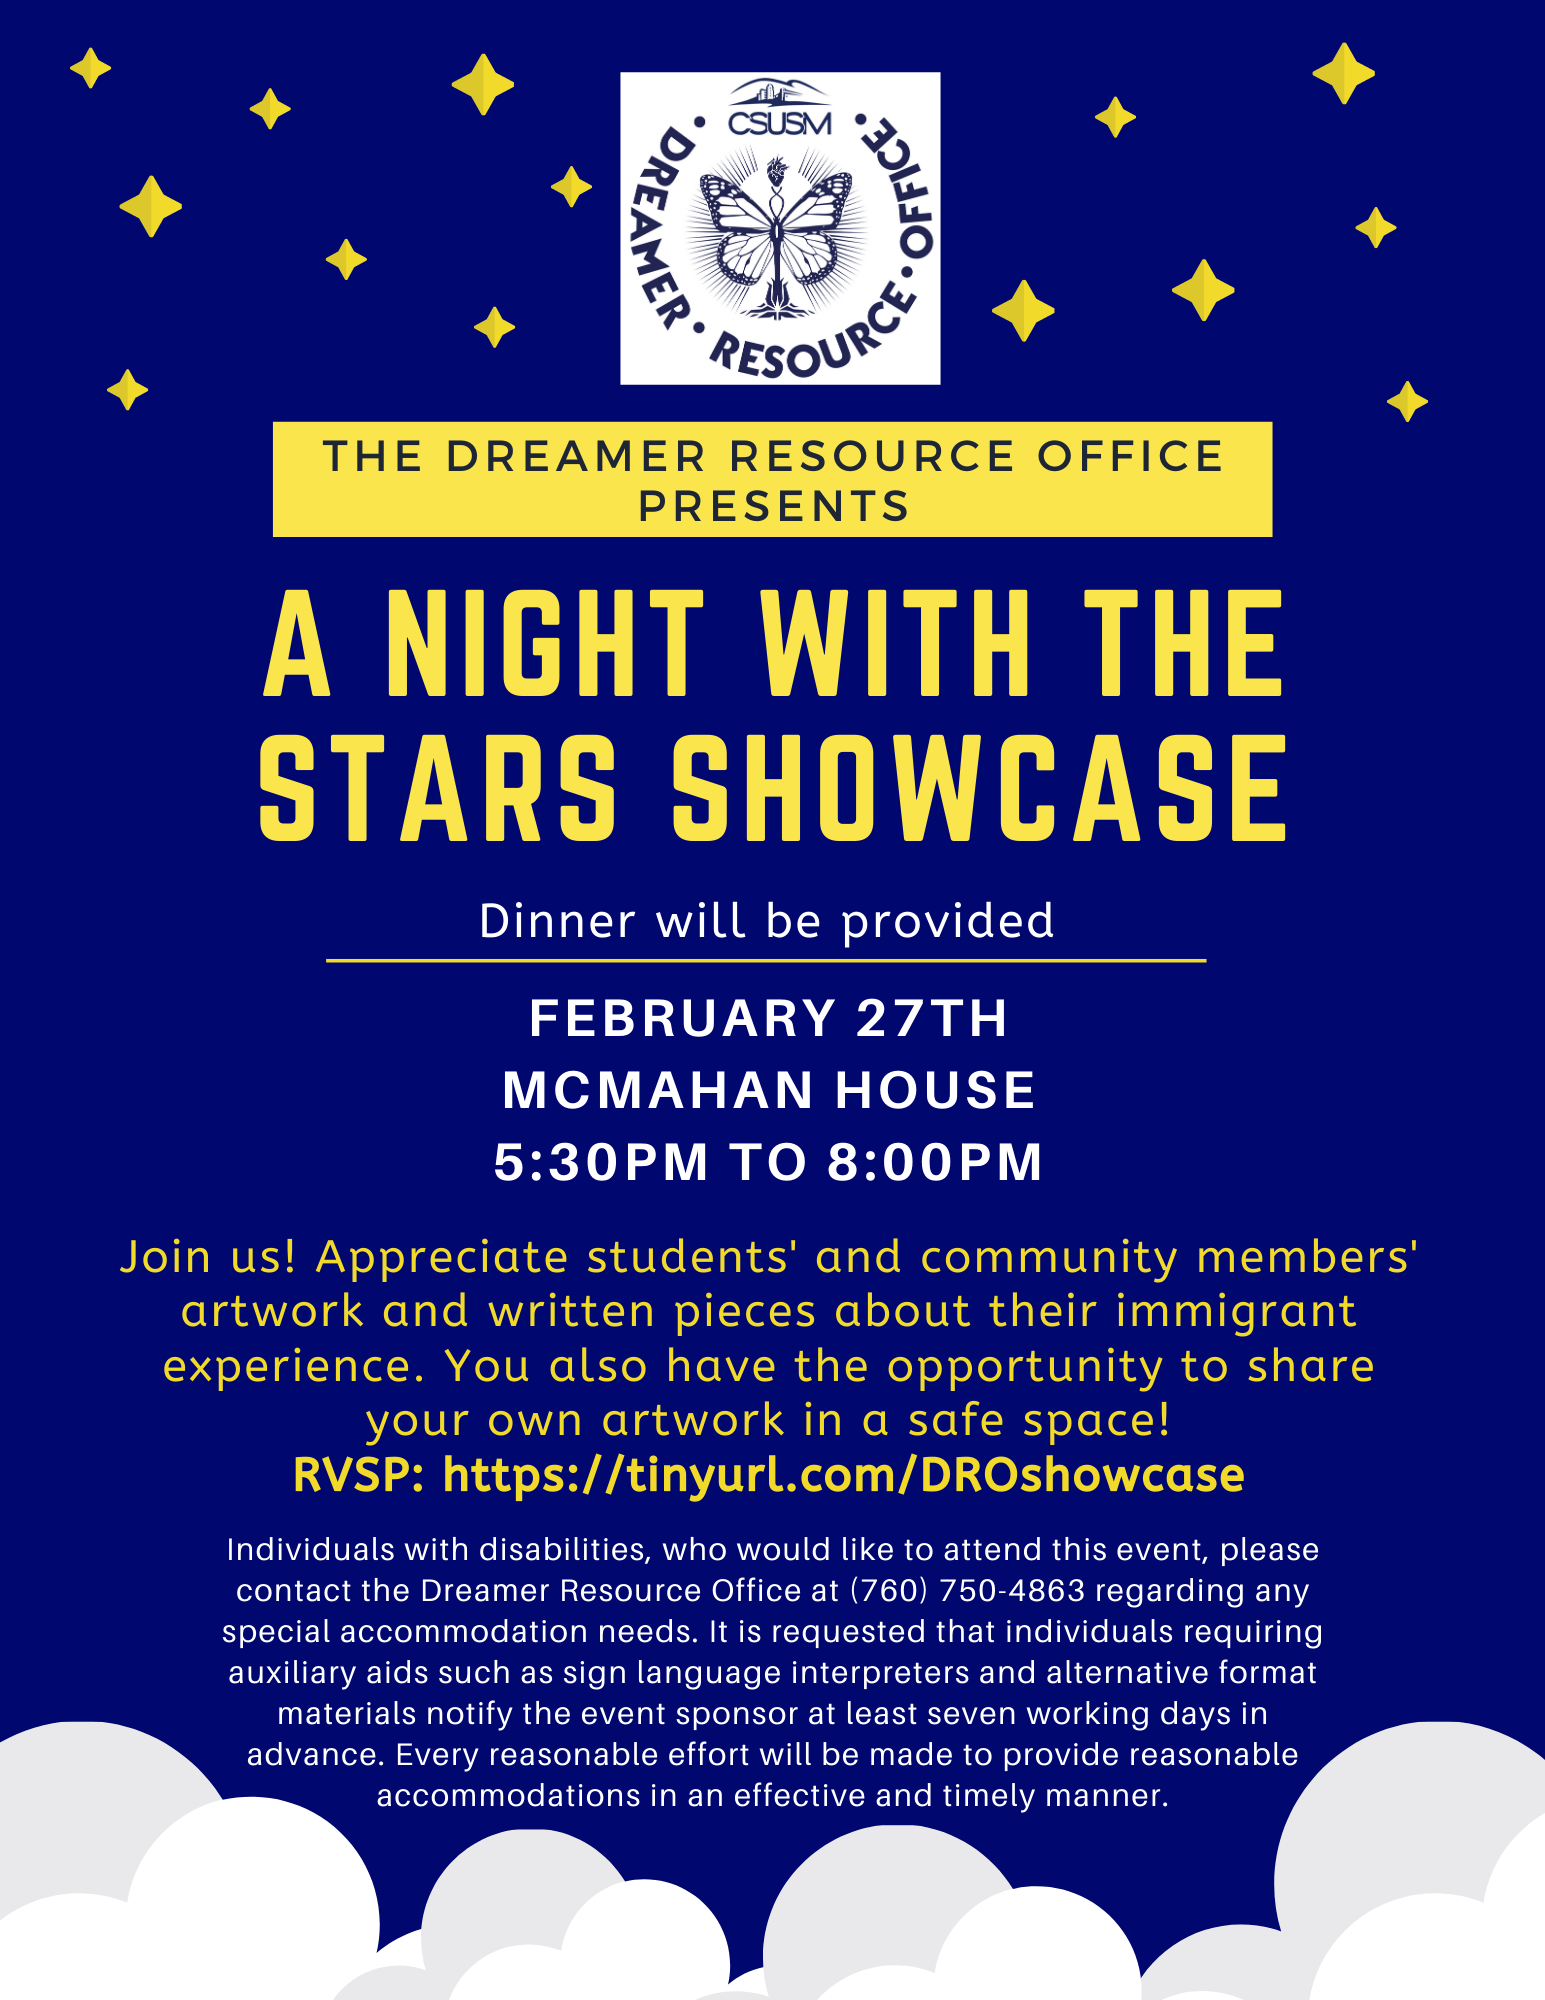 A night with the stars showcase flyer